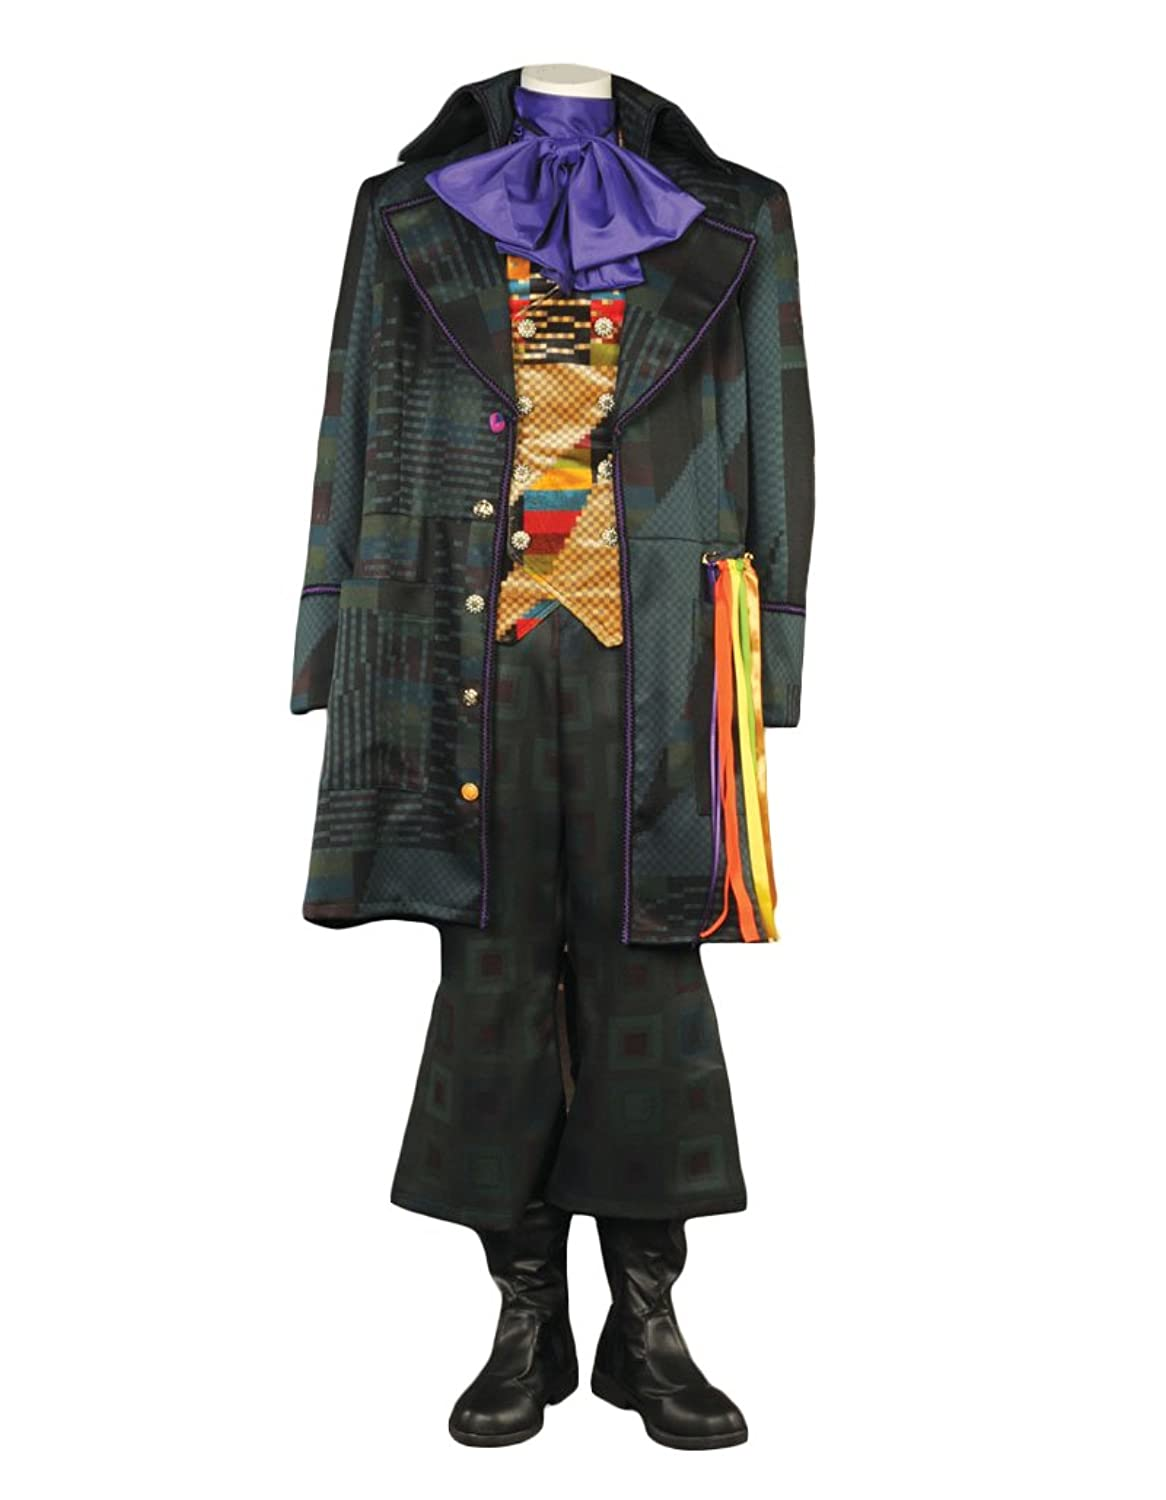 Men's Tim Burton Alice Through the Looking Glass Mad Hatter Theatrical Costume - DeluxeAdultCostumes.com